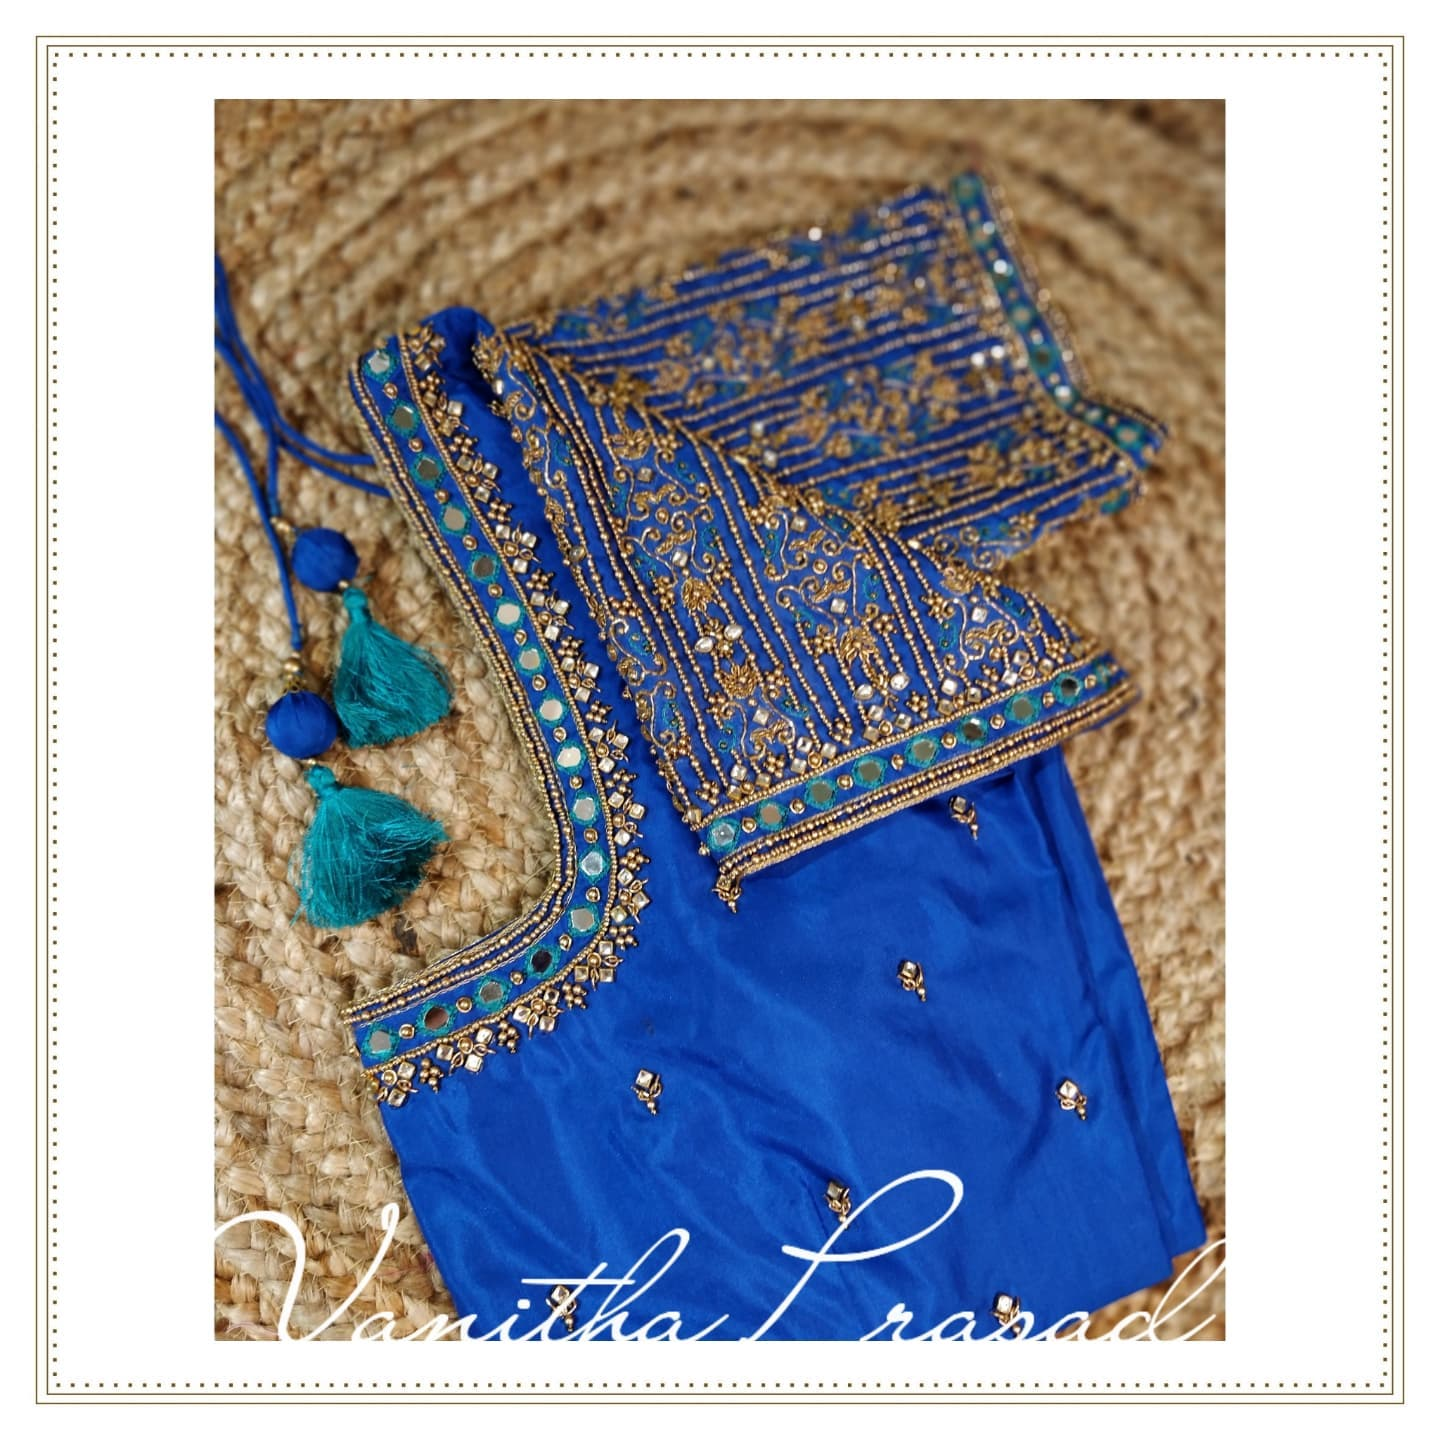 Mirror embellished symmetric linear embroidery design. Stunning blue color blouse with mirror and bead aariwork. 2021-09-13